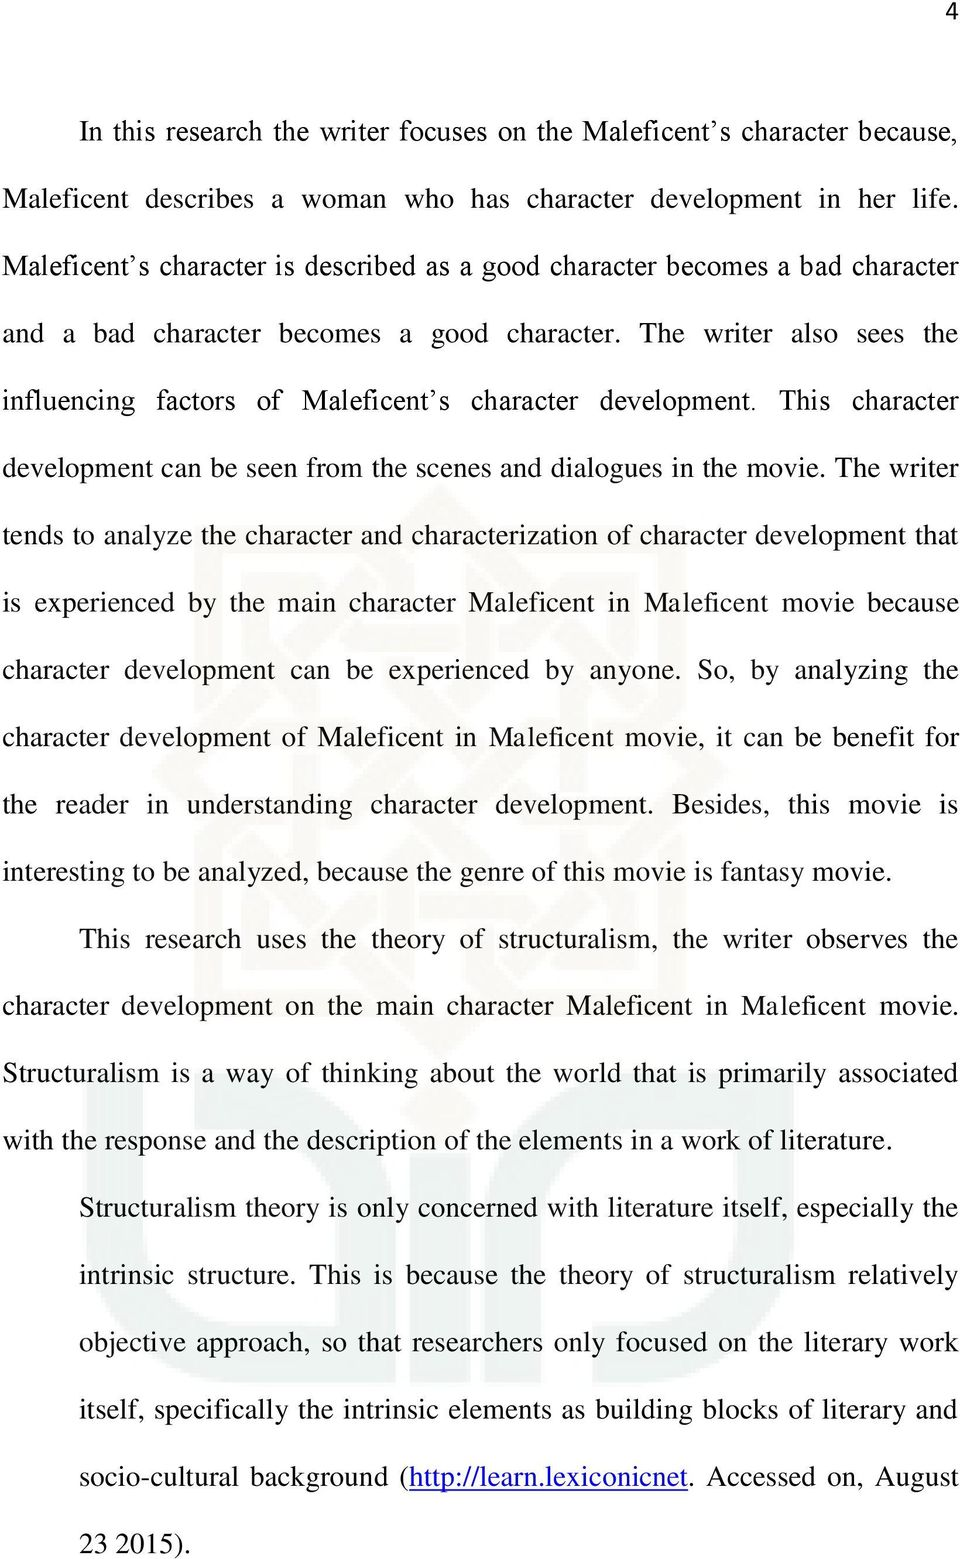 Maleficent S Character Development As Seen In Maleficent